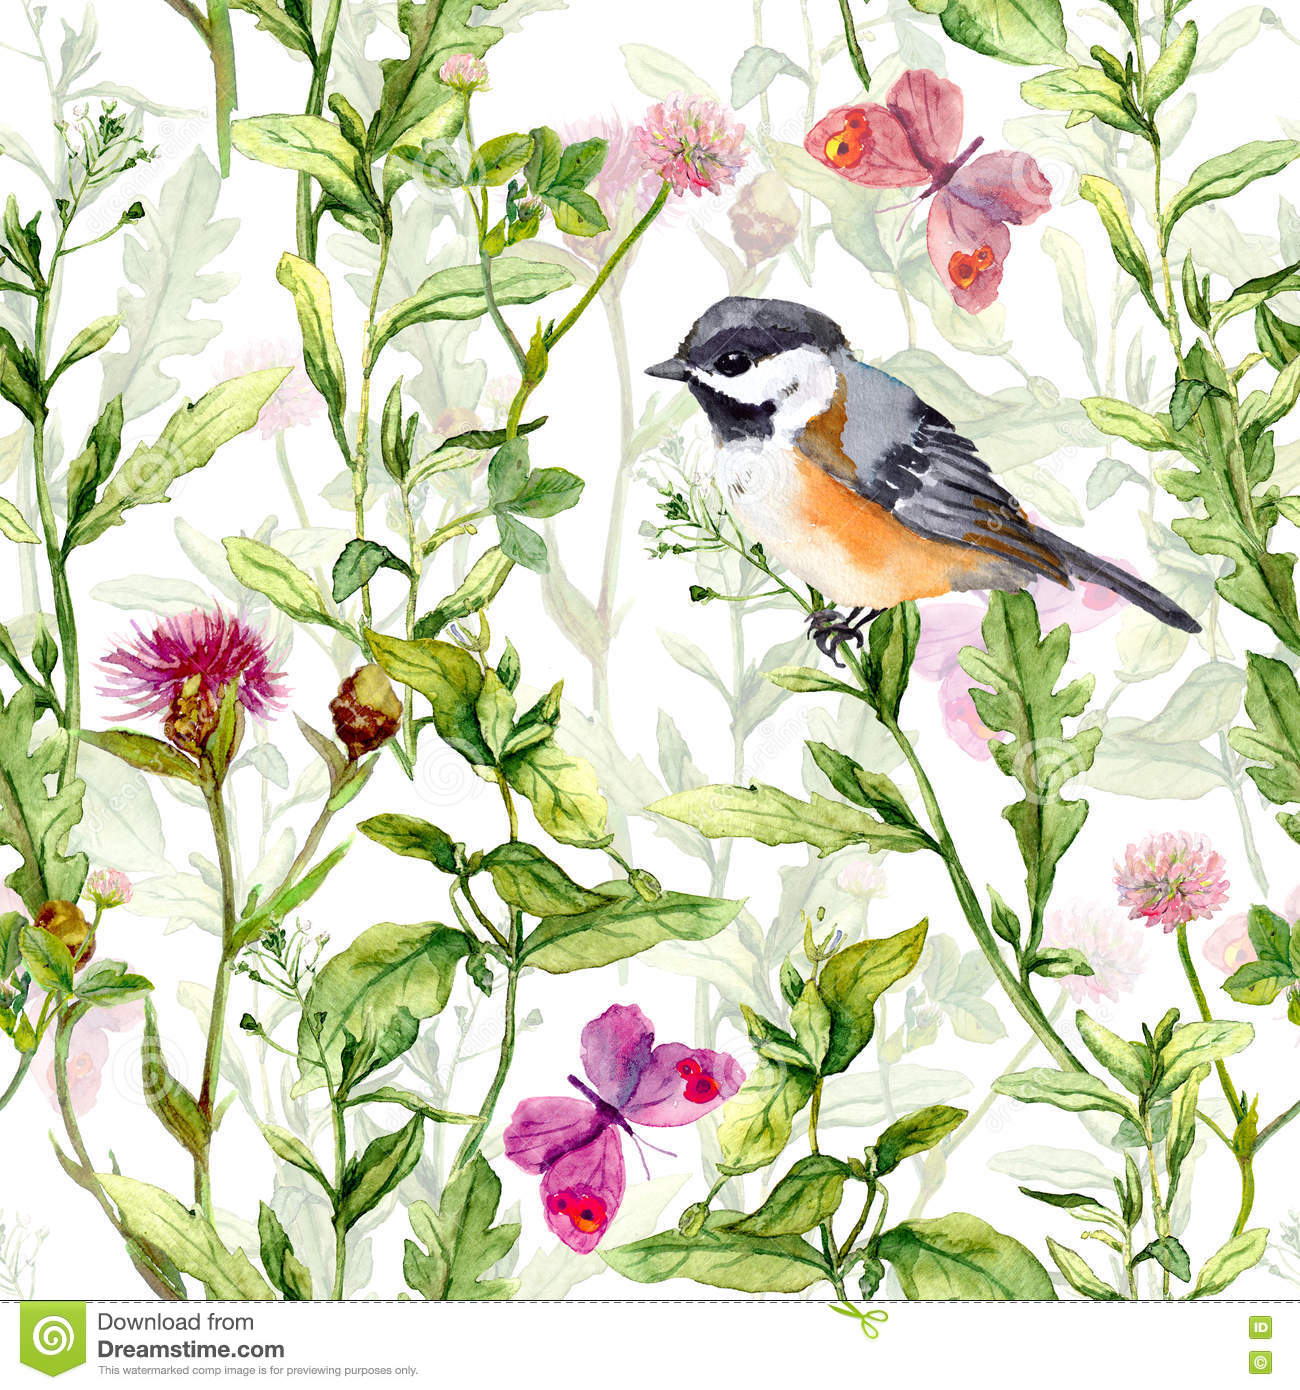 Small bird in spring meadow flowers, butterflies. Repeated pattern. Watercolor